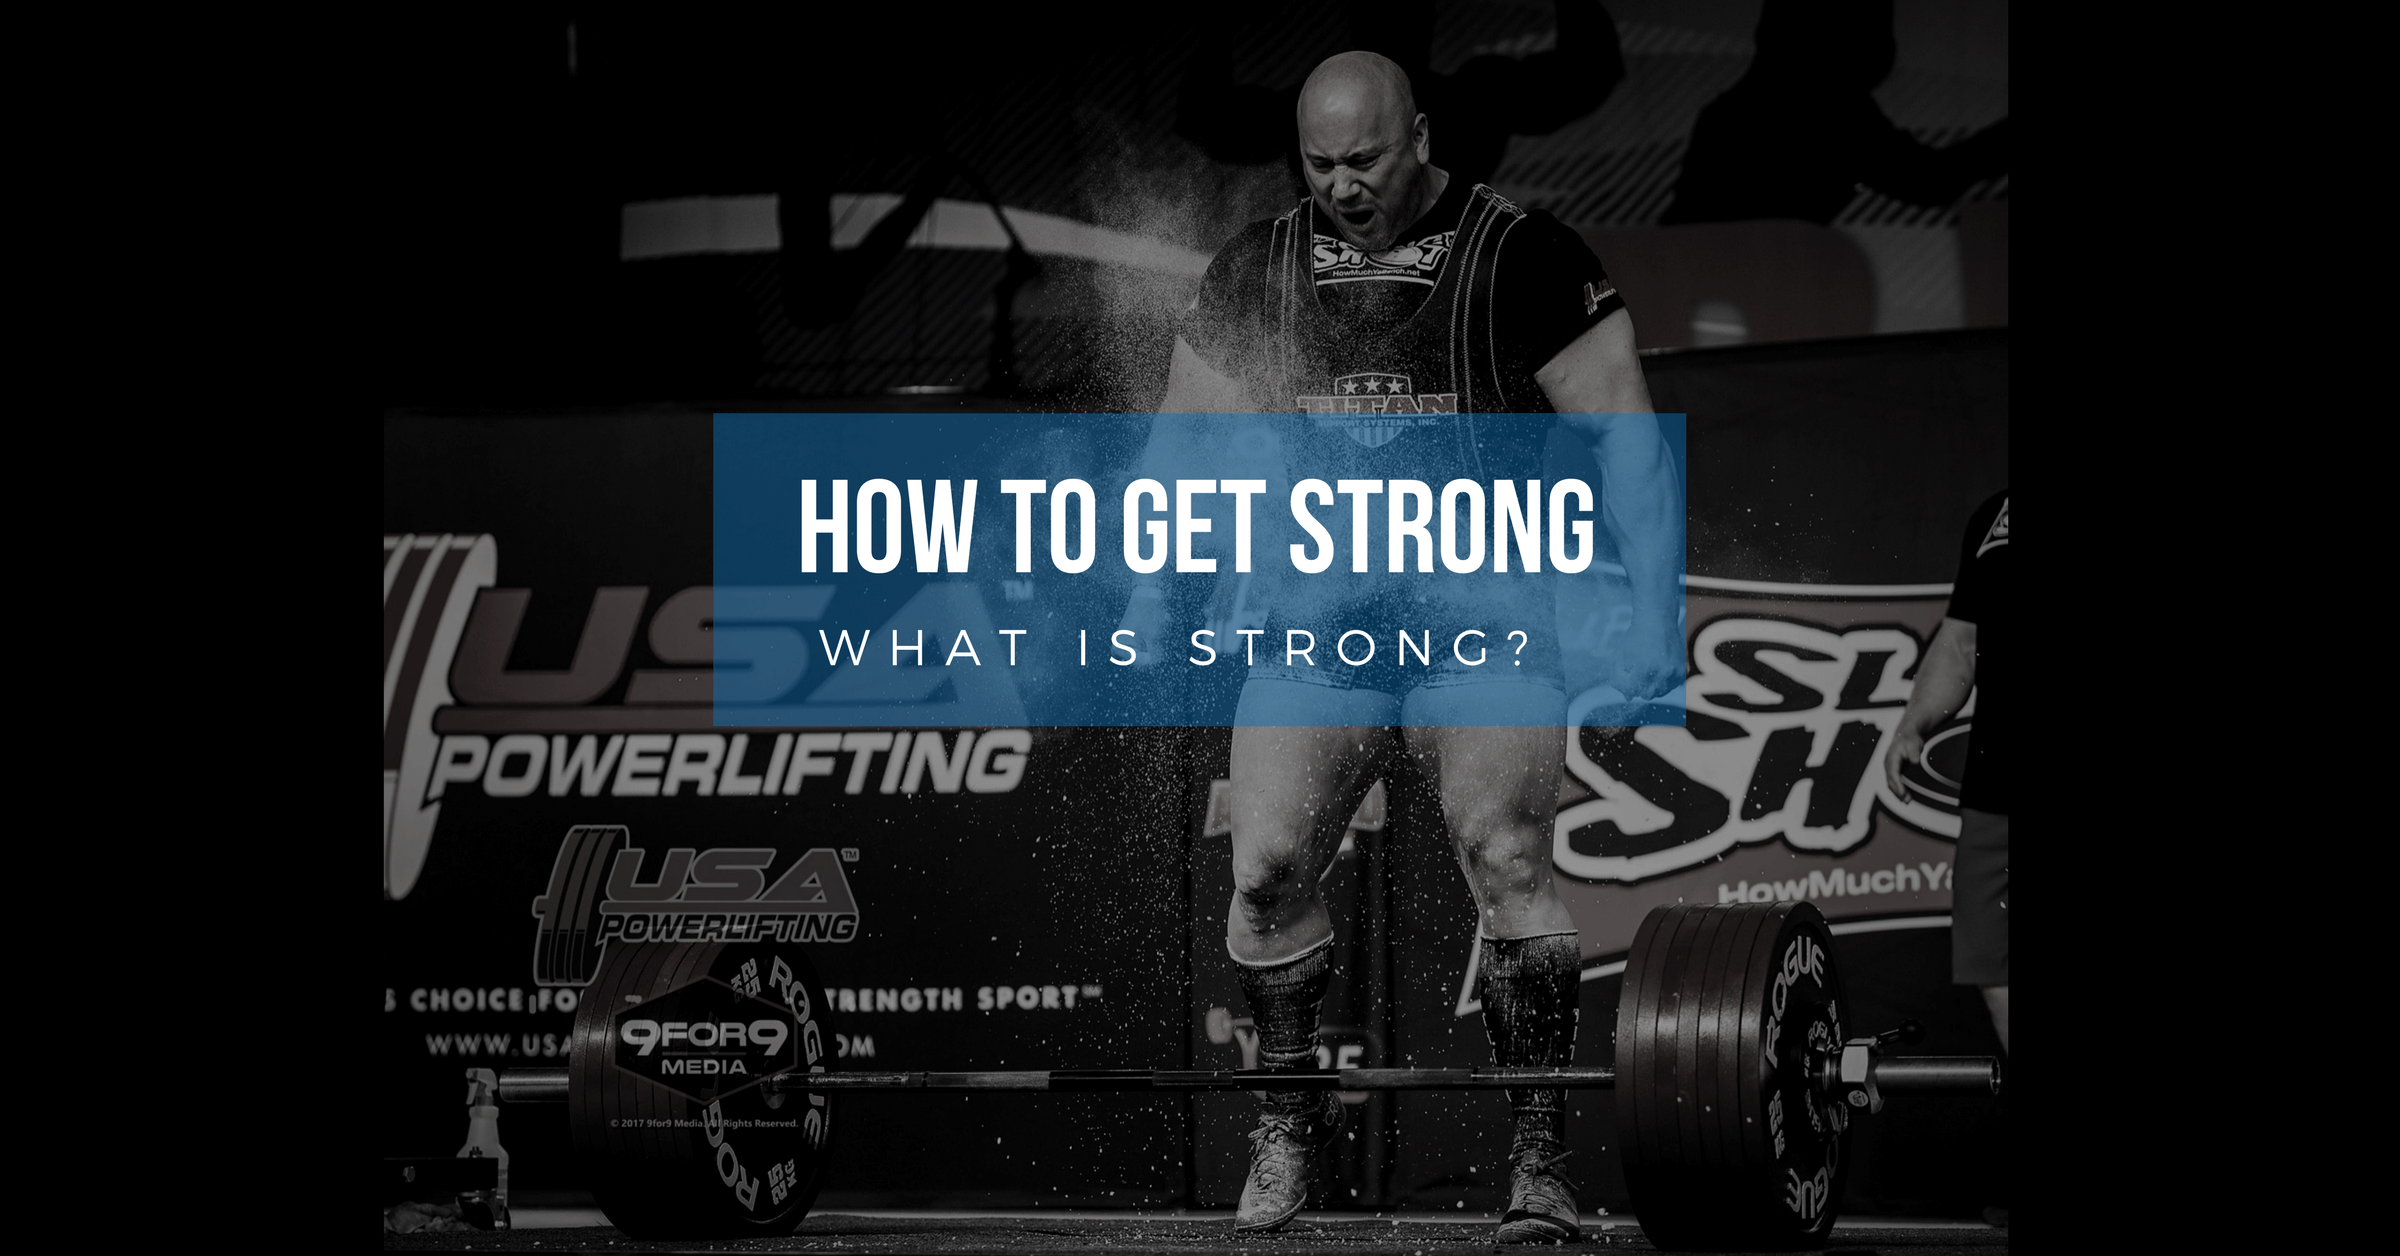 What is Strong? (How to Get Strong, Part 2)